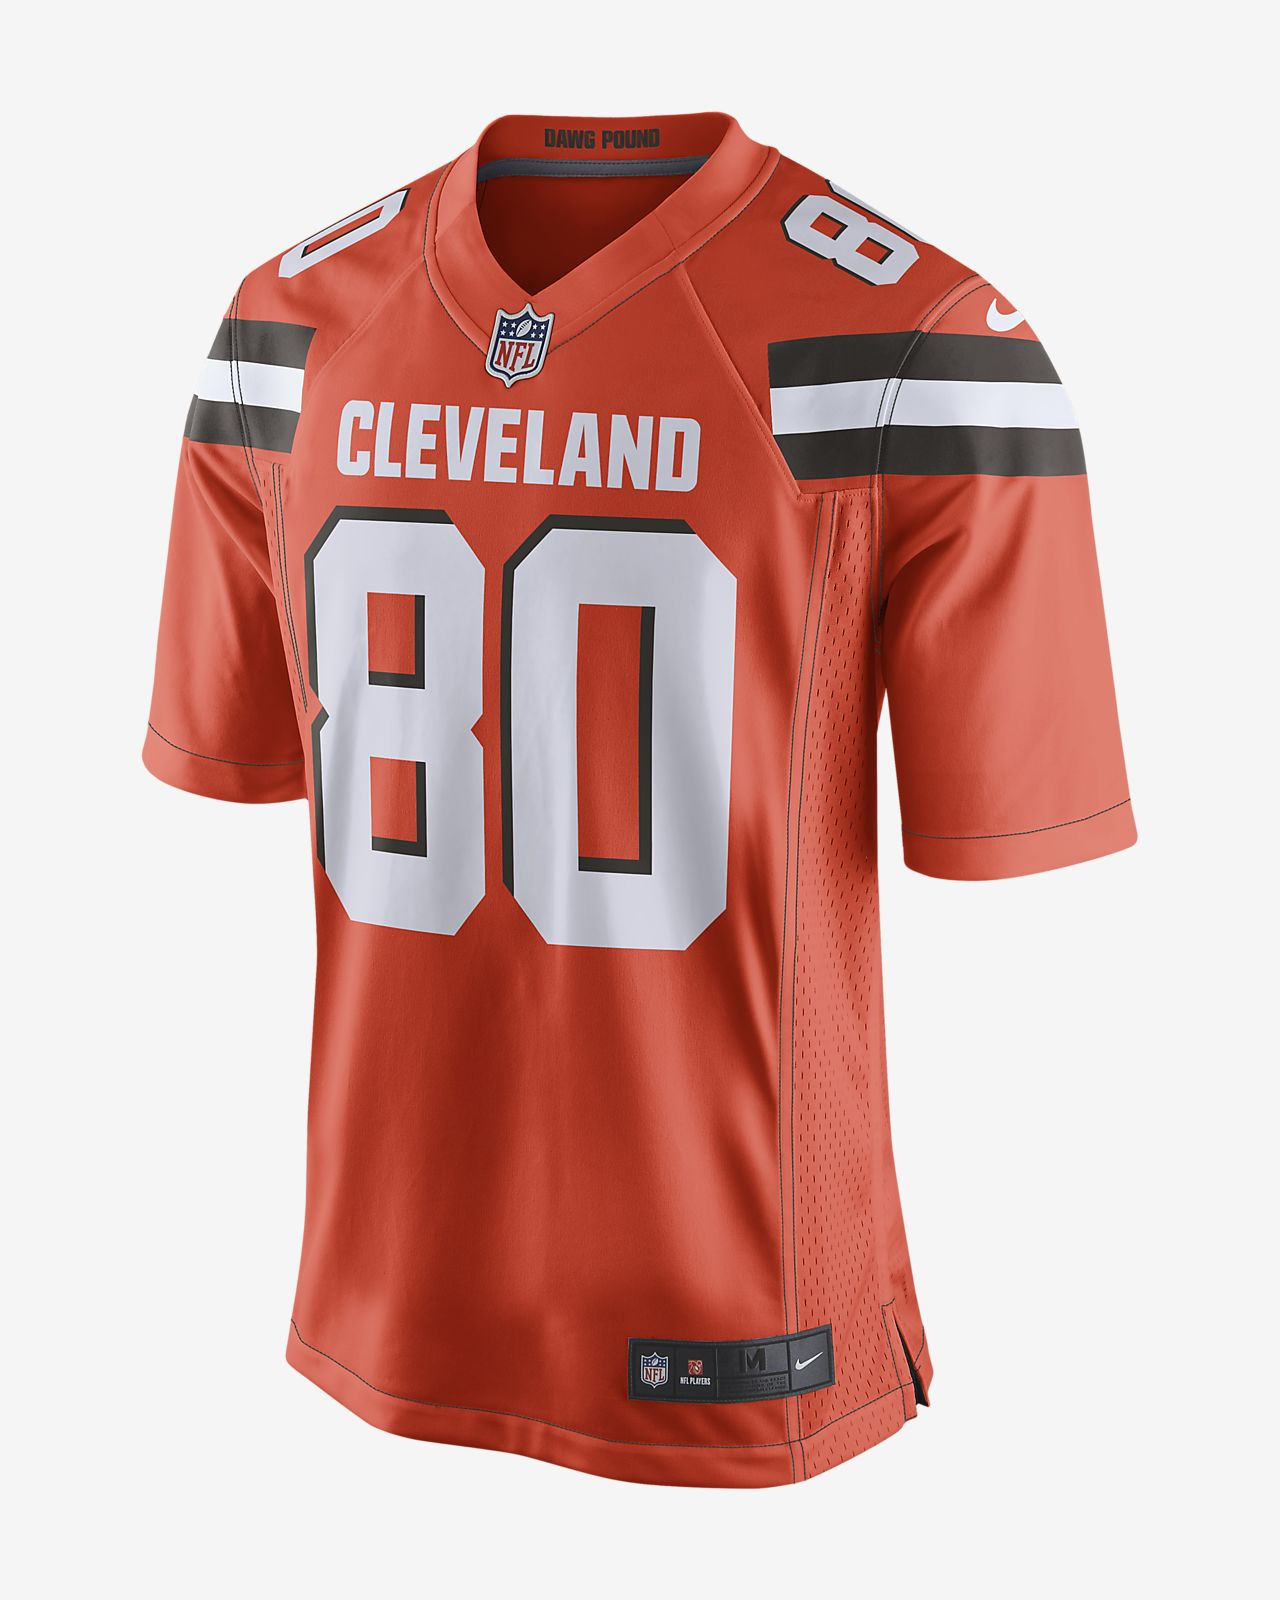 NFL Cleveland Browns Game Jersey (Jarvis Landry) Men s Football ... 6e13bef1e